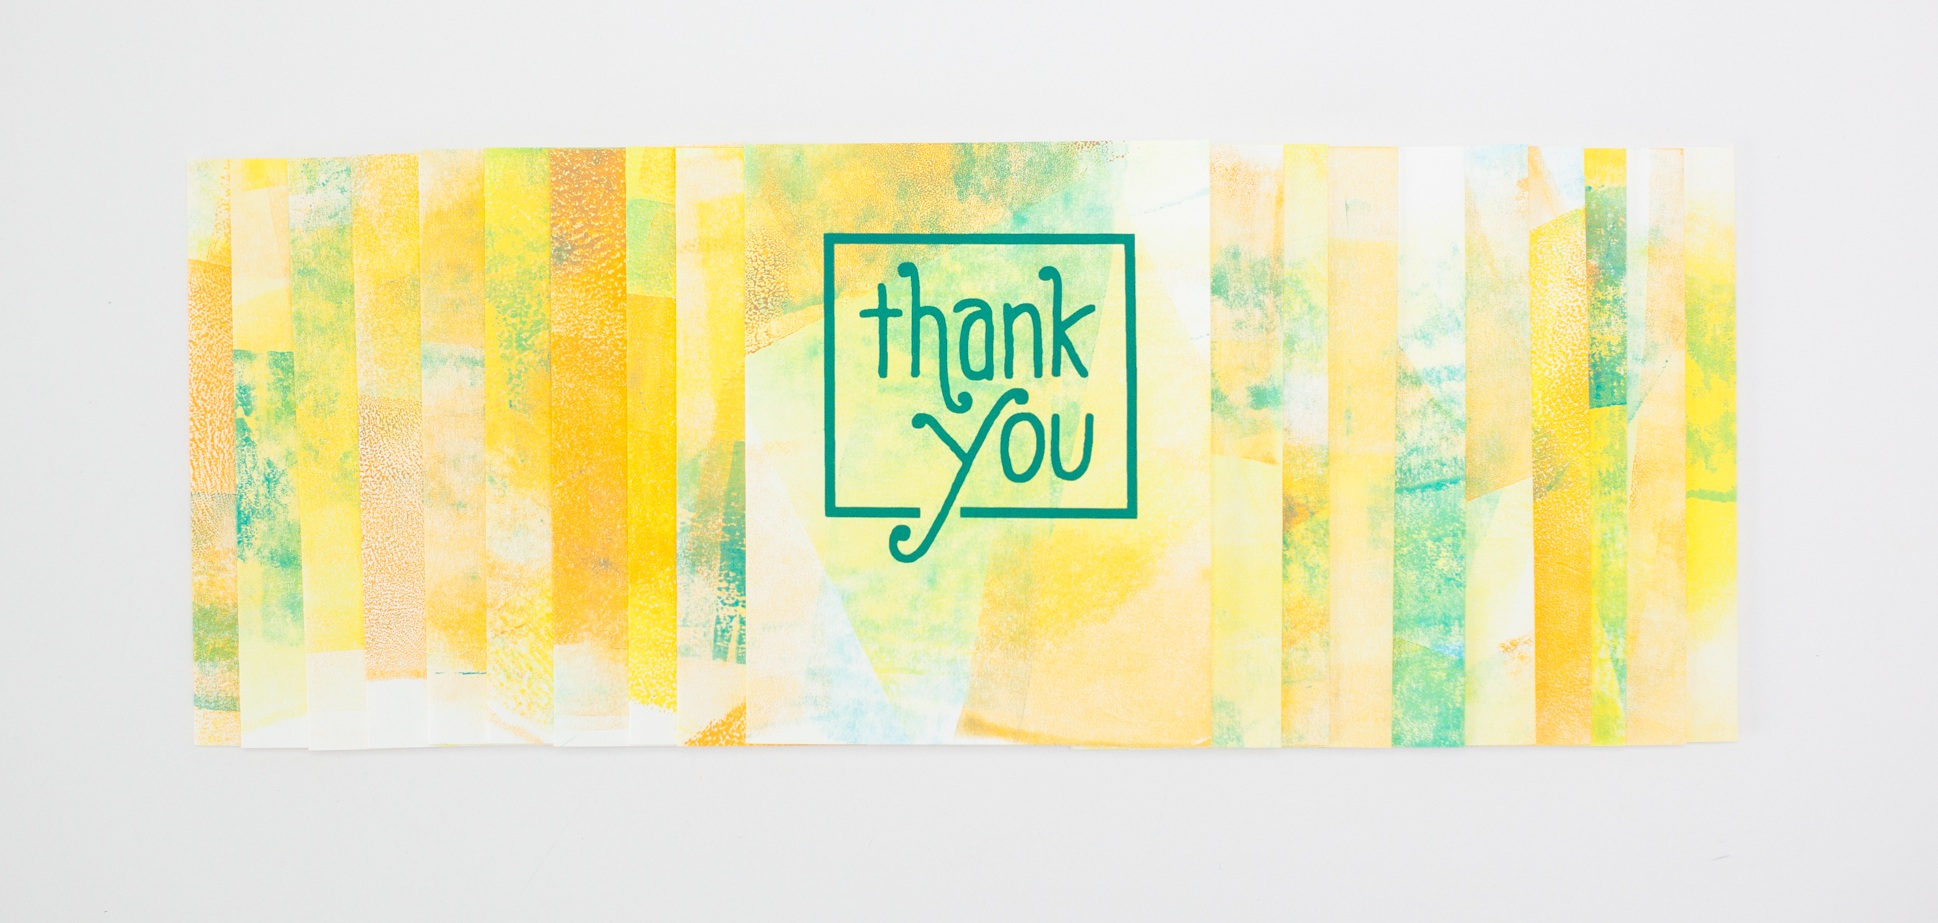 OOAK_thank_you_card_exit343design.jpg